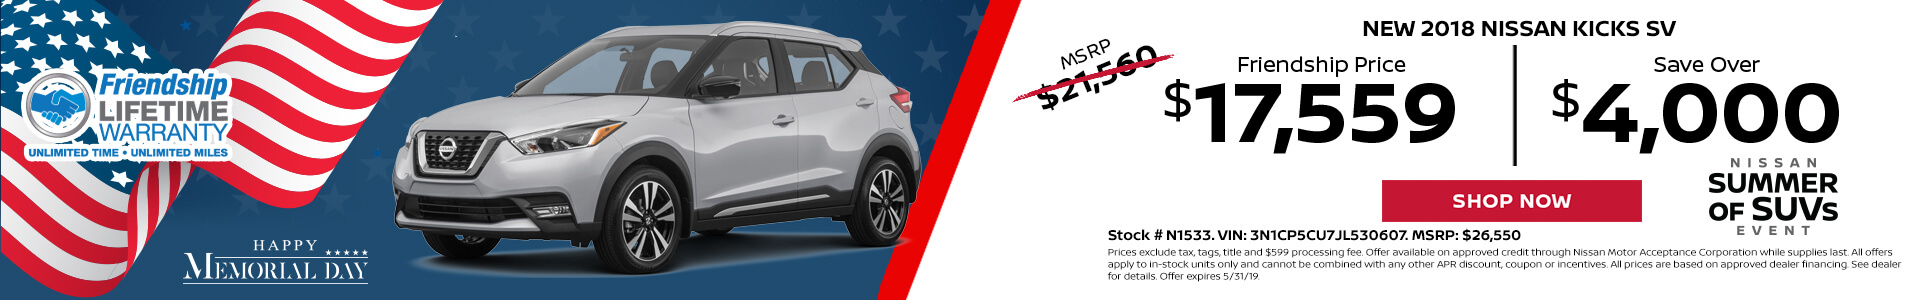 Nissan Kicks $17,559 Purchase